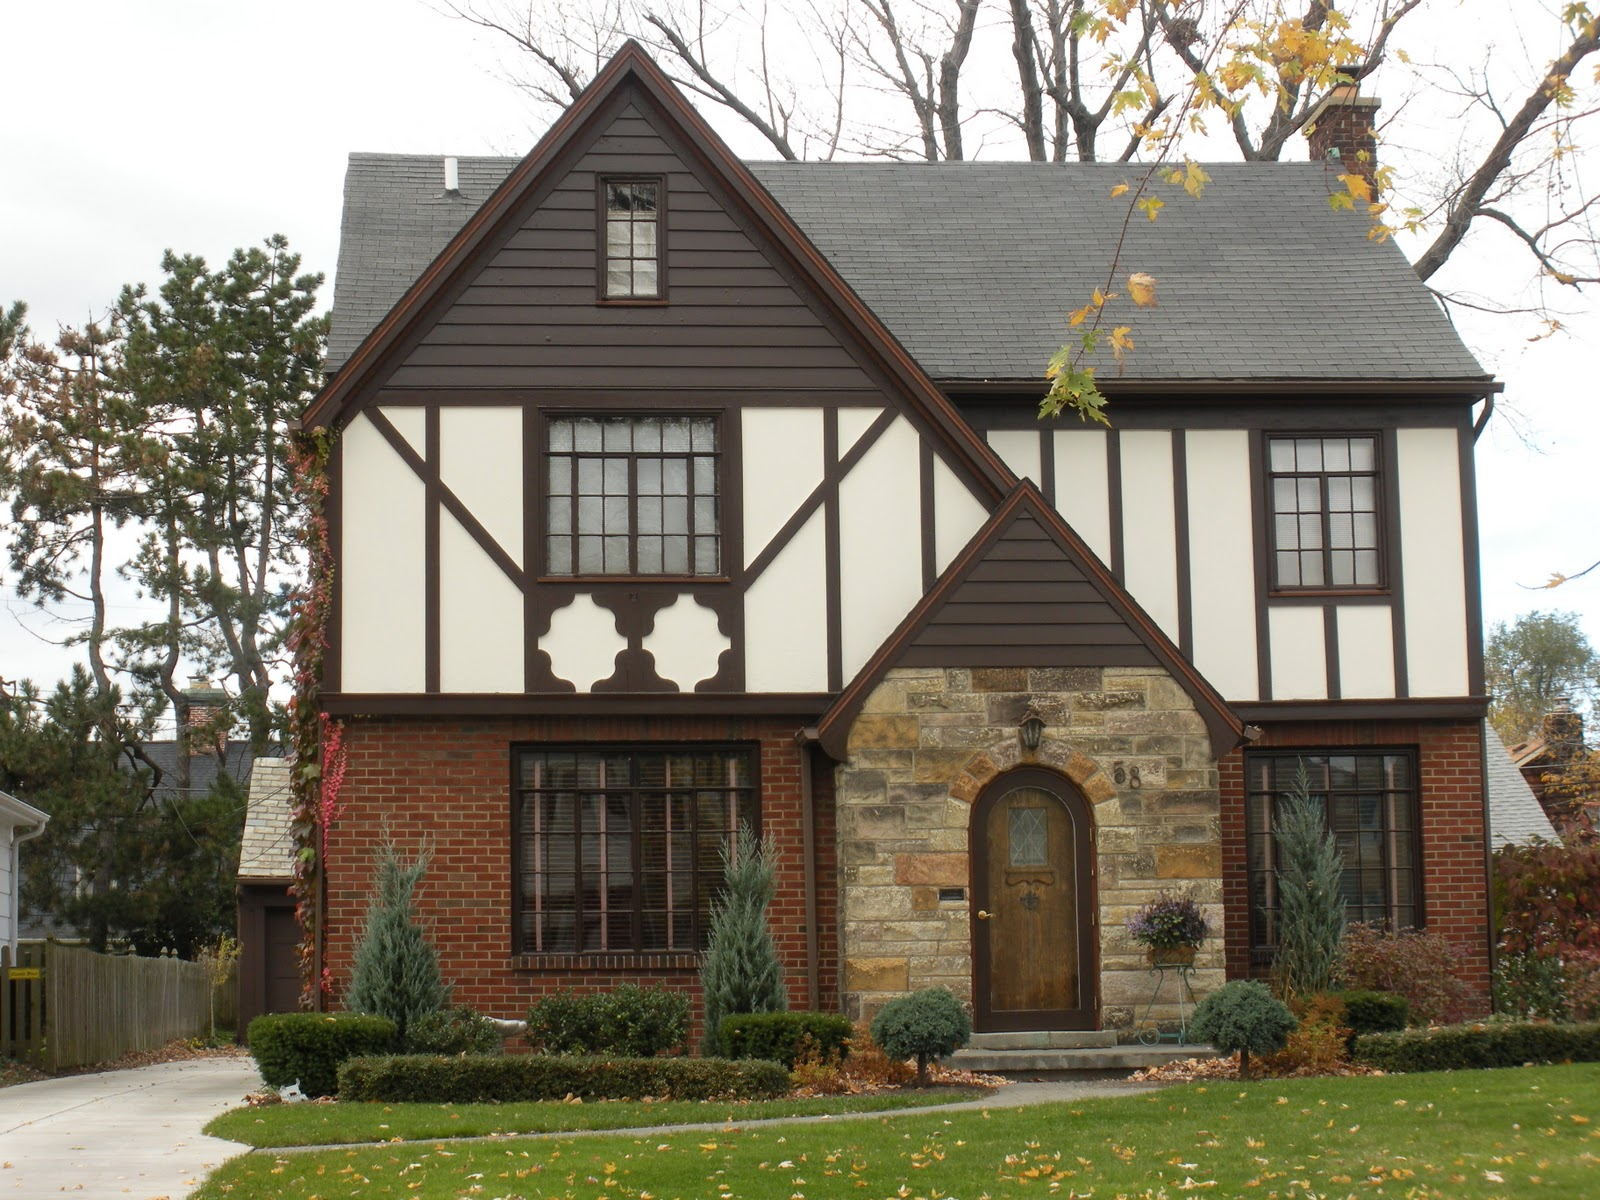 Reinventing the past housing styles of tudor ville and for Different styles of houses